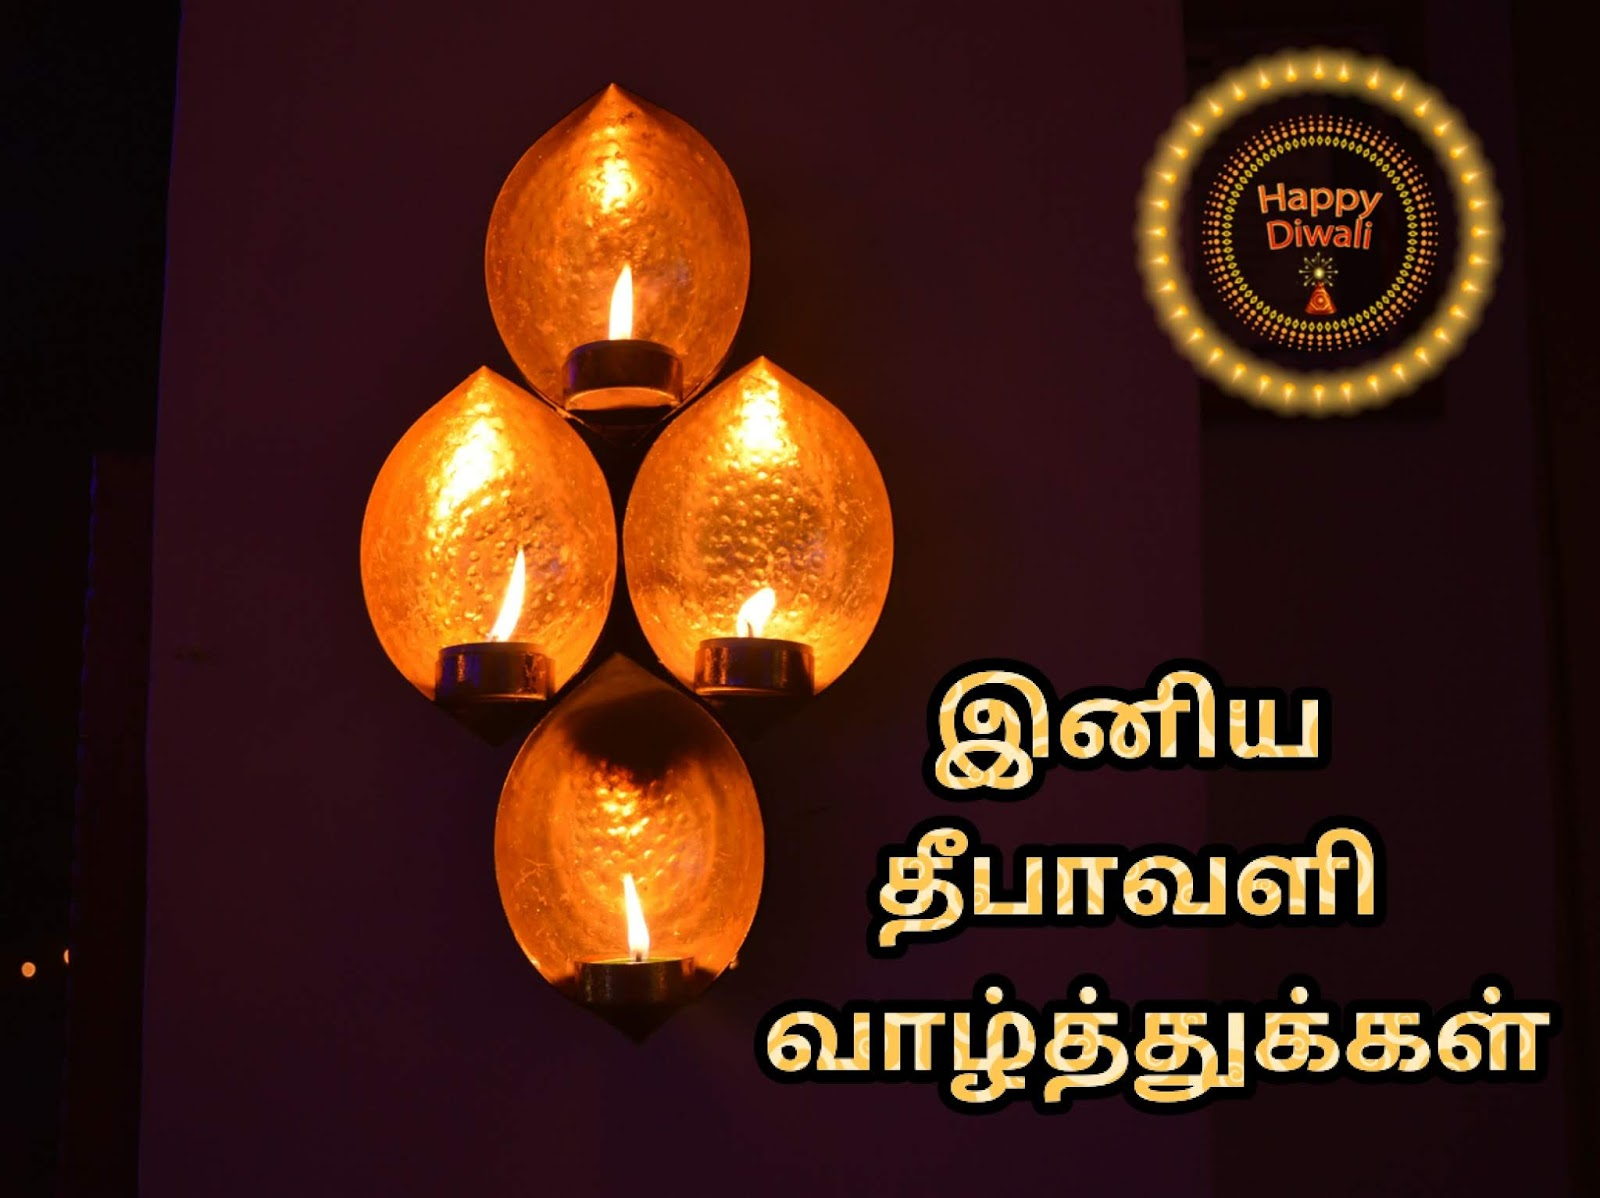 Happy Diwali Greetings In Tamil 2018 Language Text Font Script